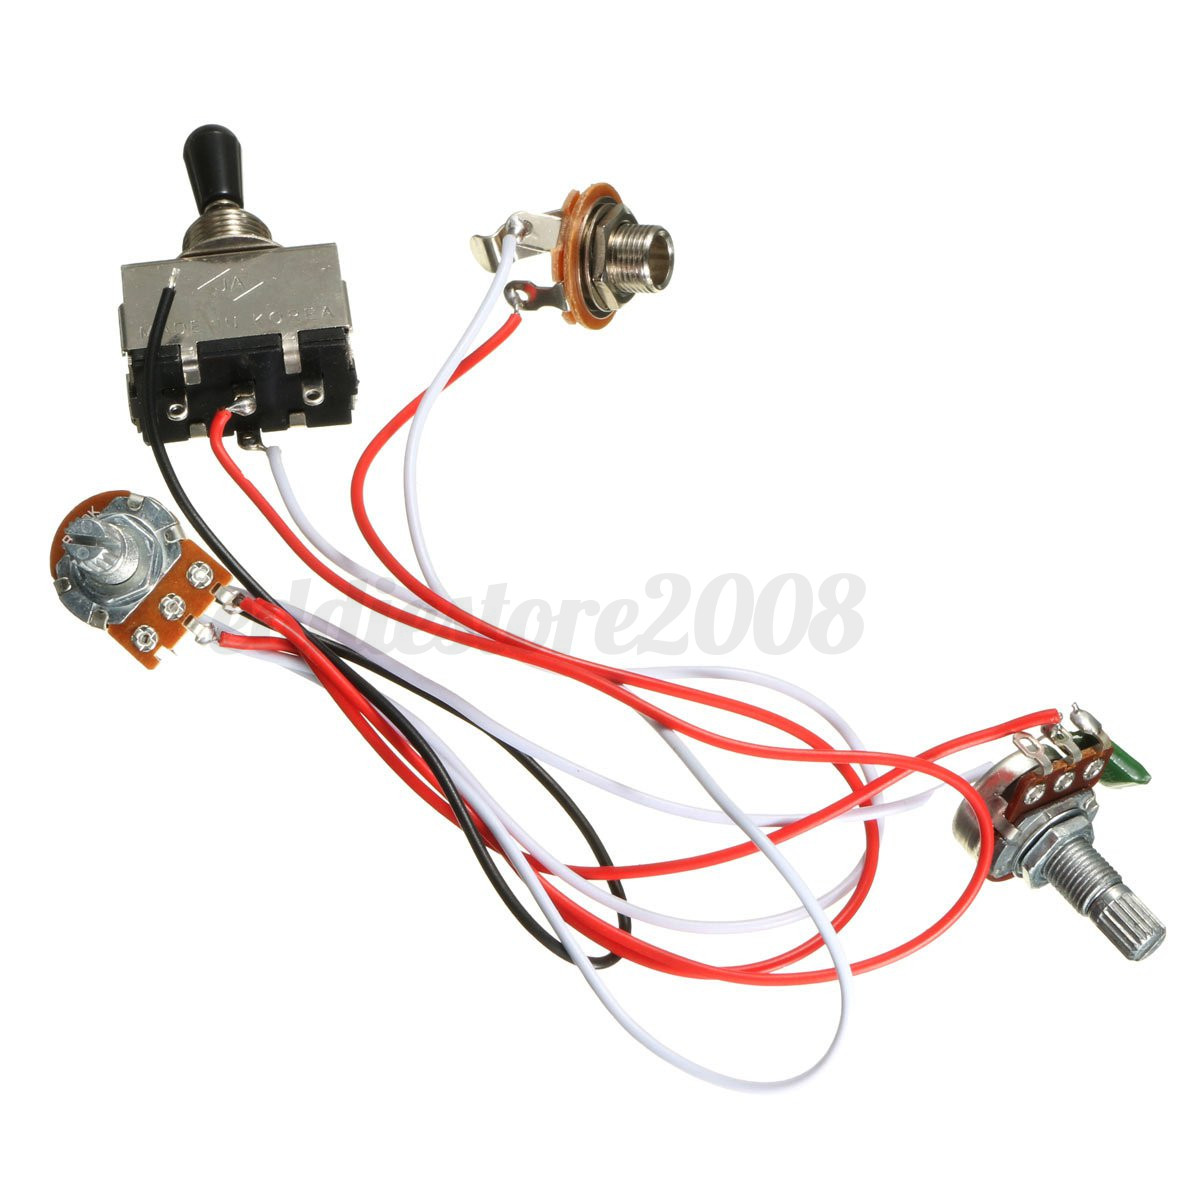 3 way electric mercury outboard tach wiring diagram guitar toggle switch harness kit 1